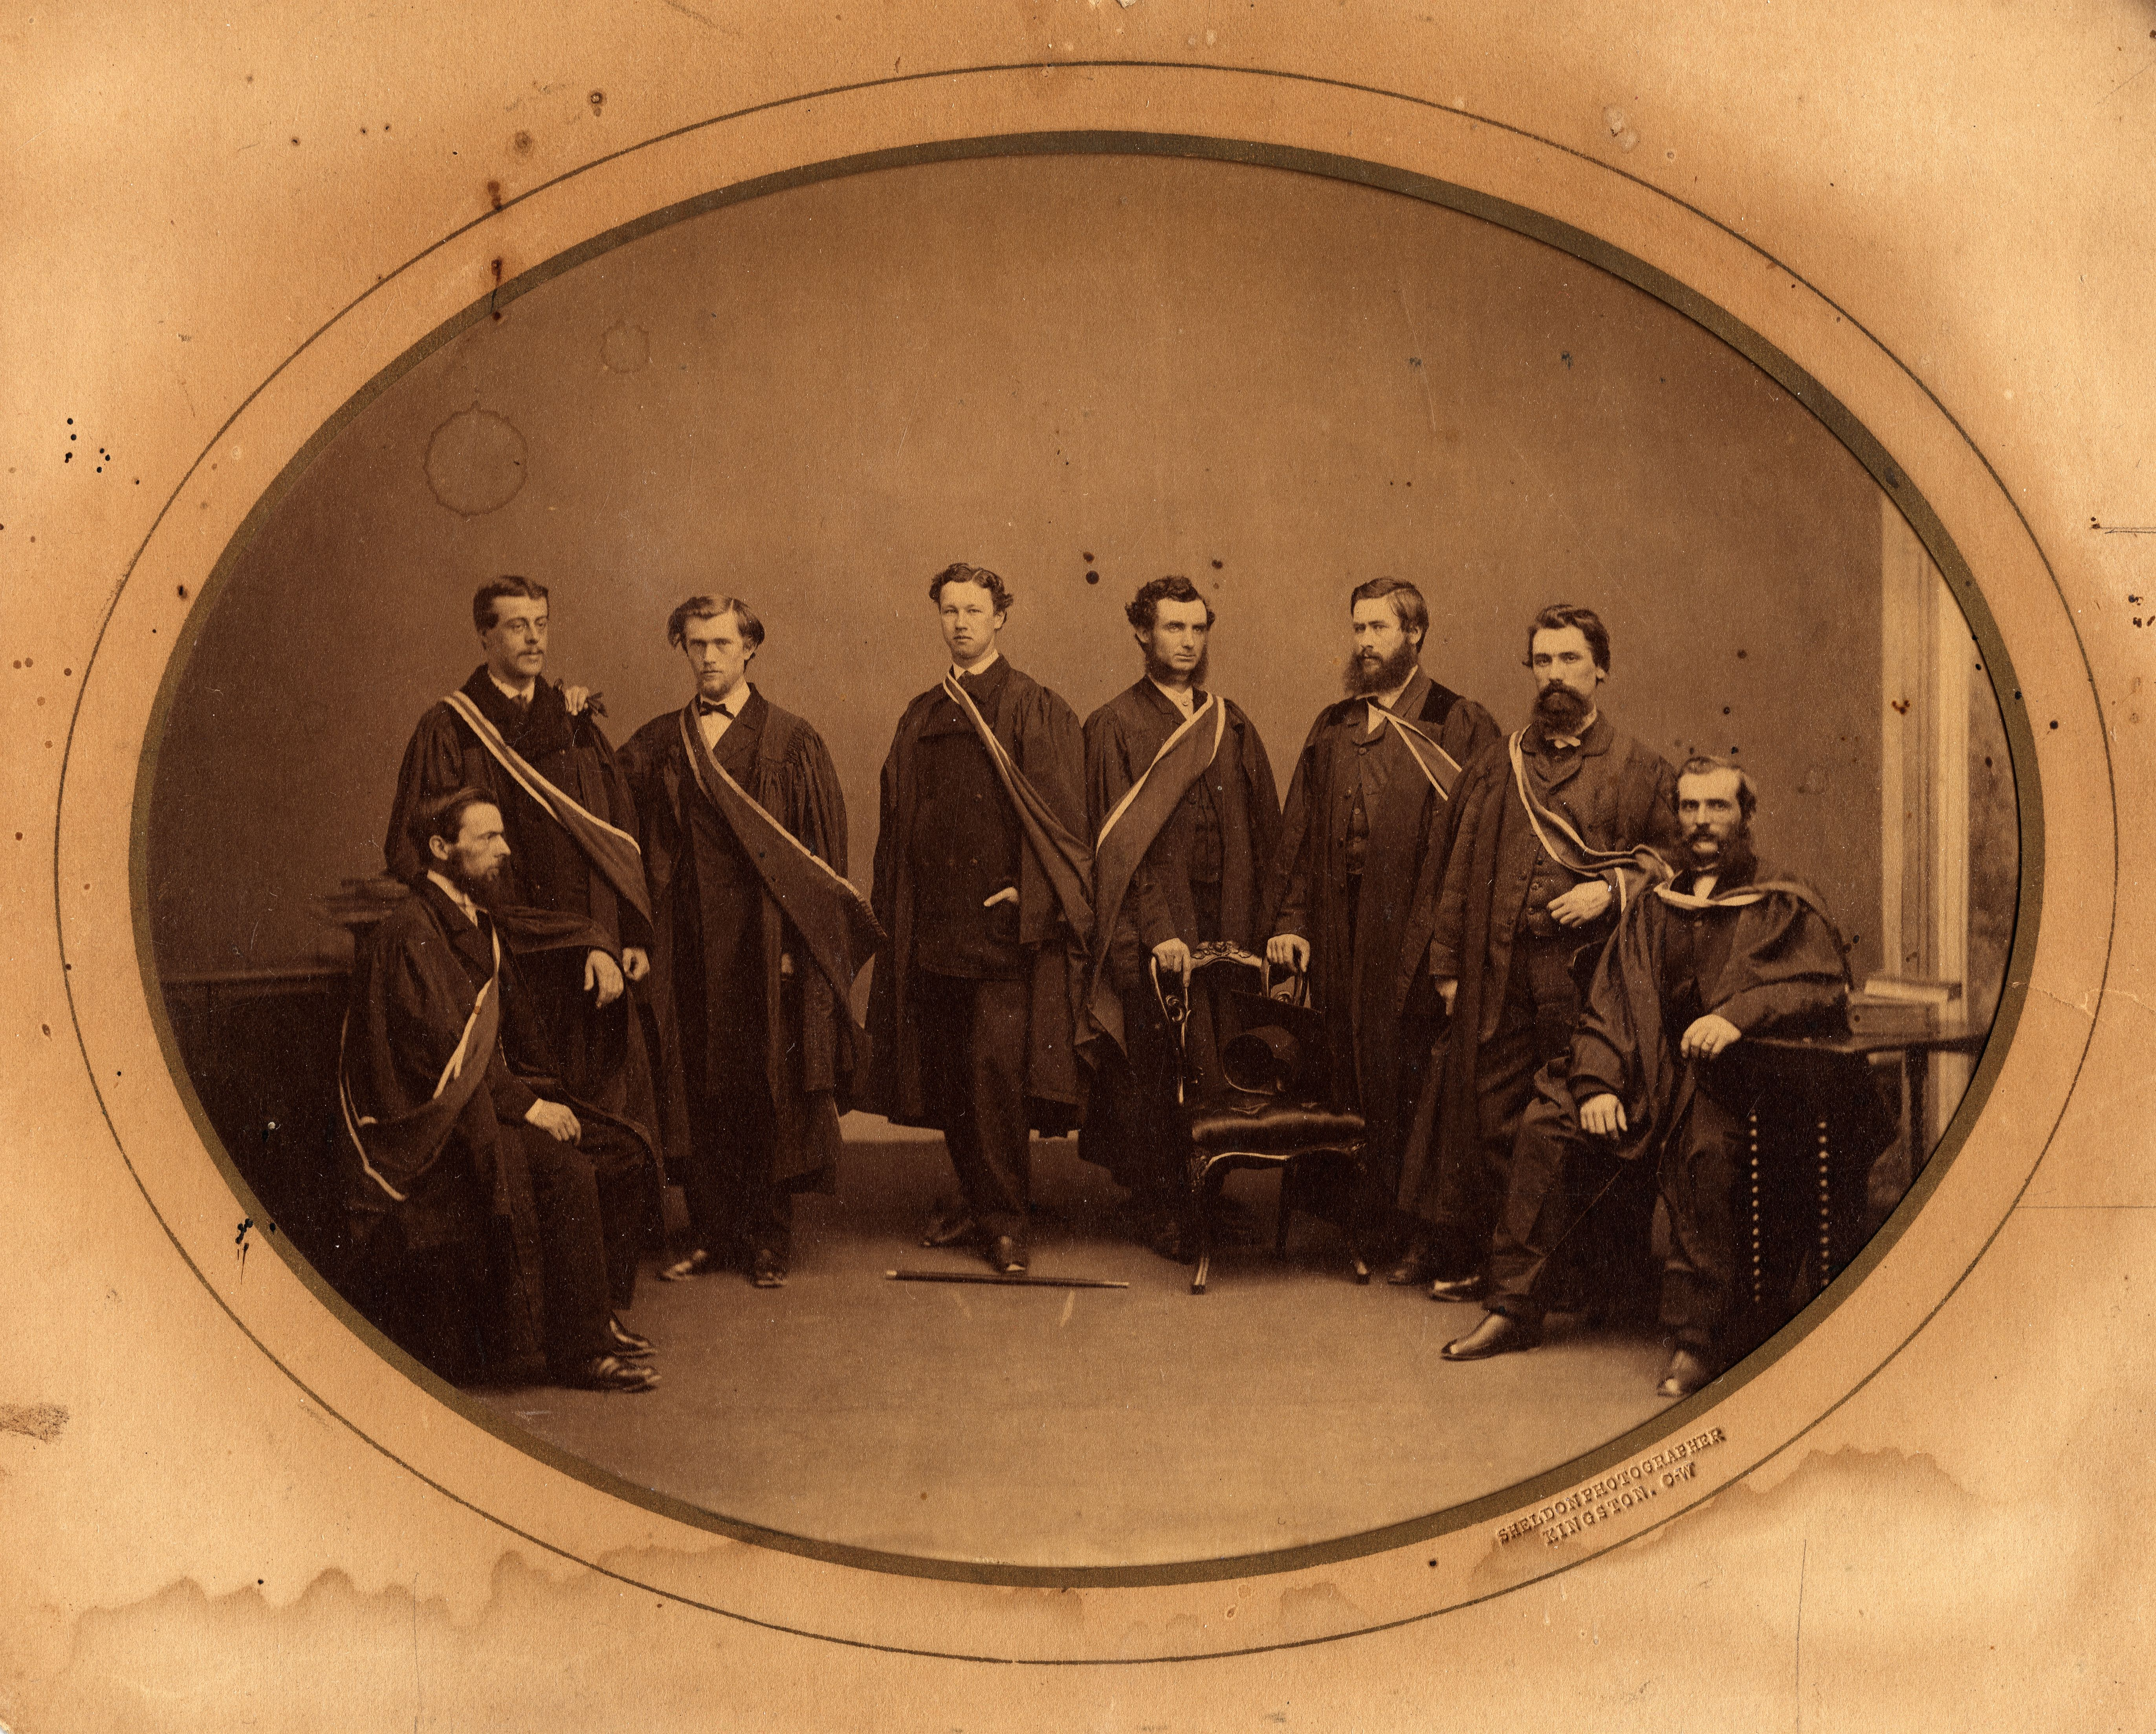 Period photograph of 8 Queen's University medical graduates in academic robes, 1865